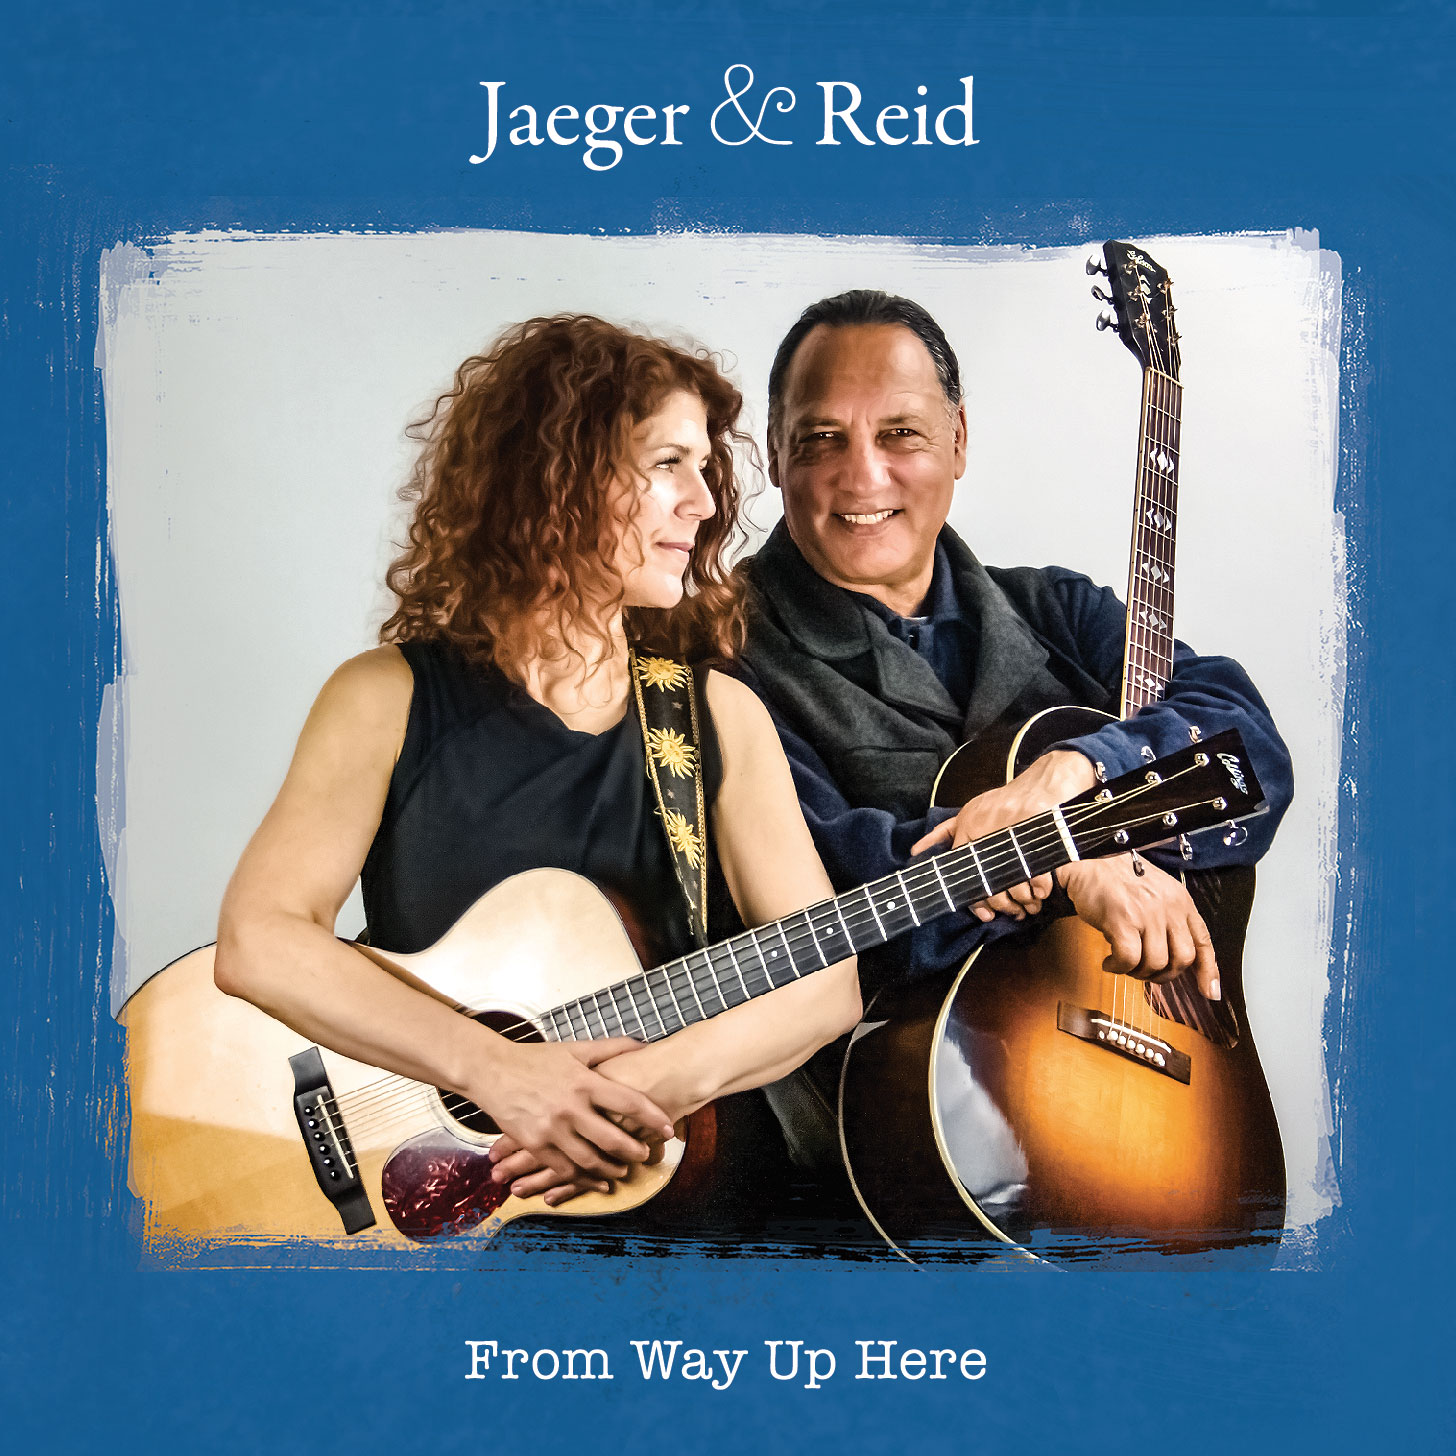 Jaeger & Reid - From Way Up Here - Cover Image